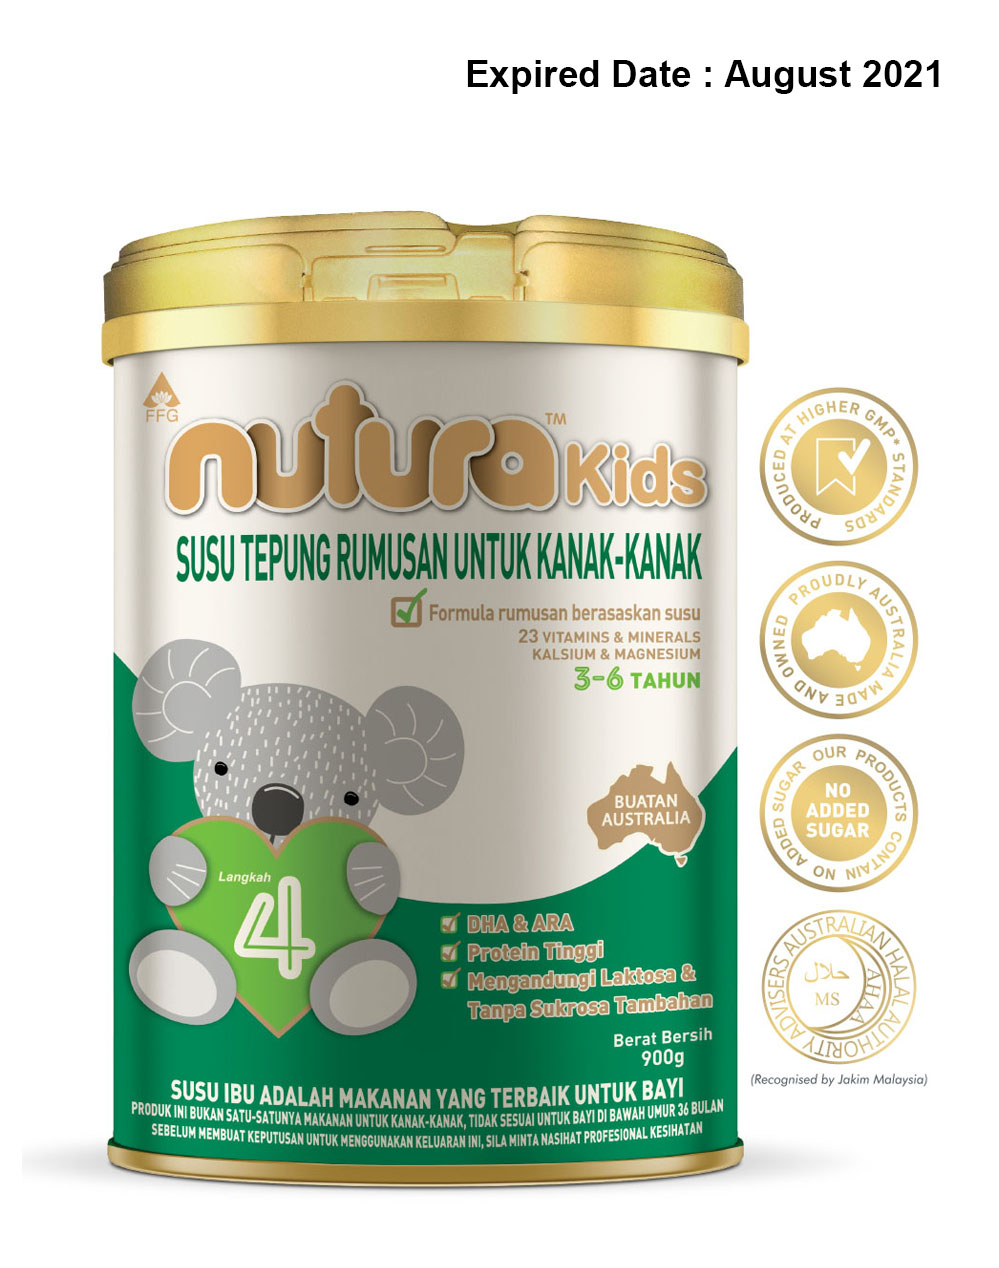 nuturaKids Stage 4 Follow-on Formula (36 months+)